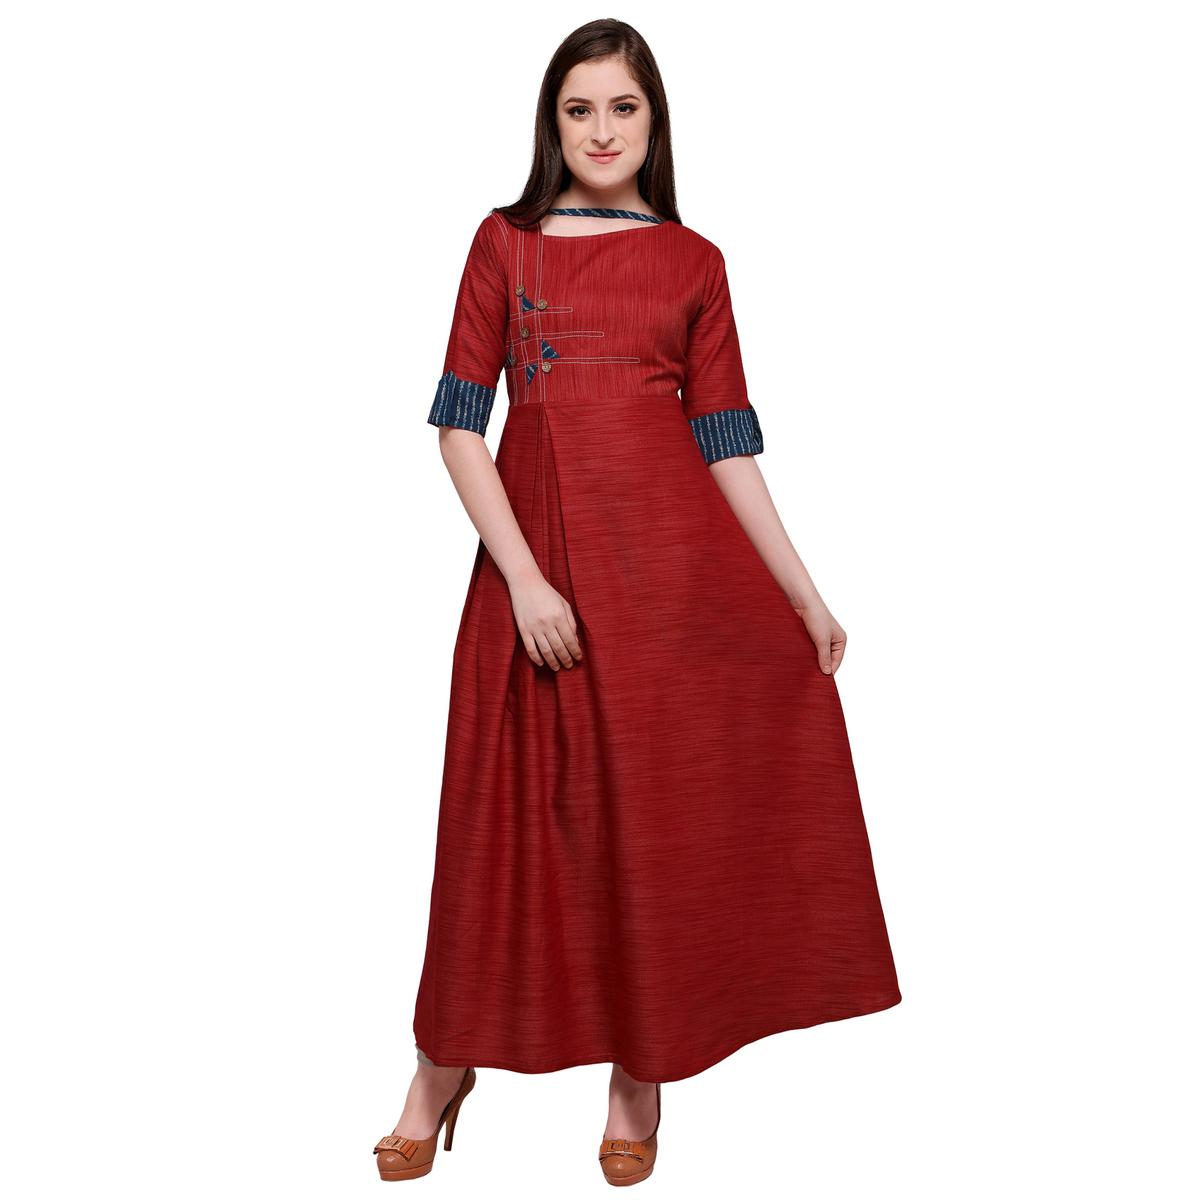 Sensational Red Colored Partywear Heavy Rayon Fancy Kurti